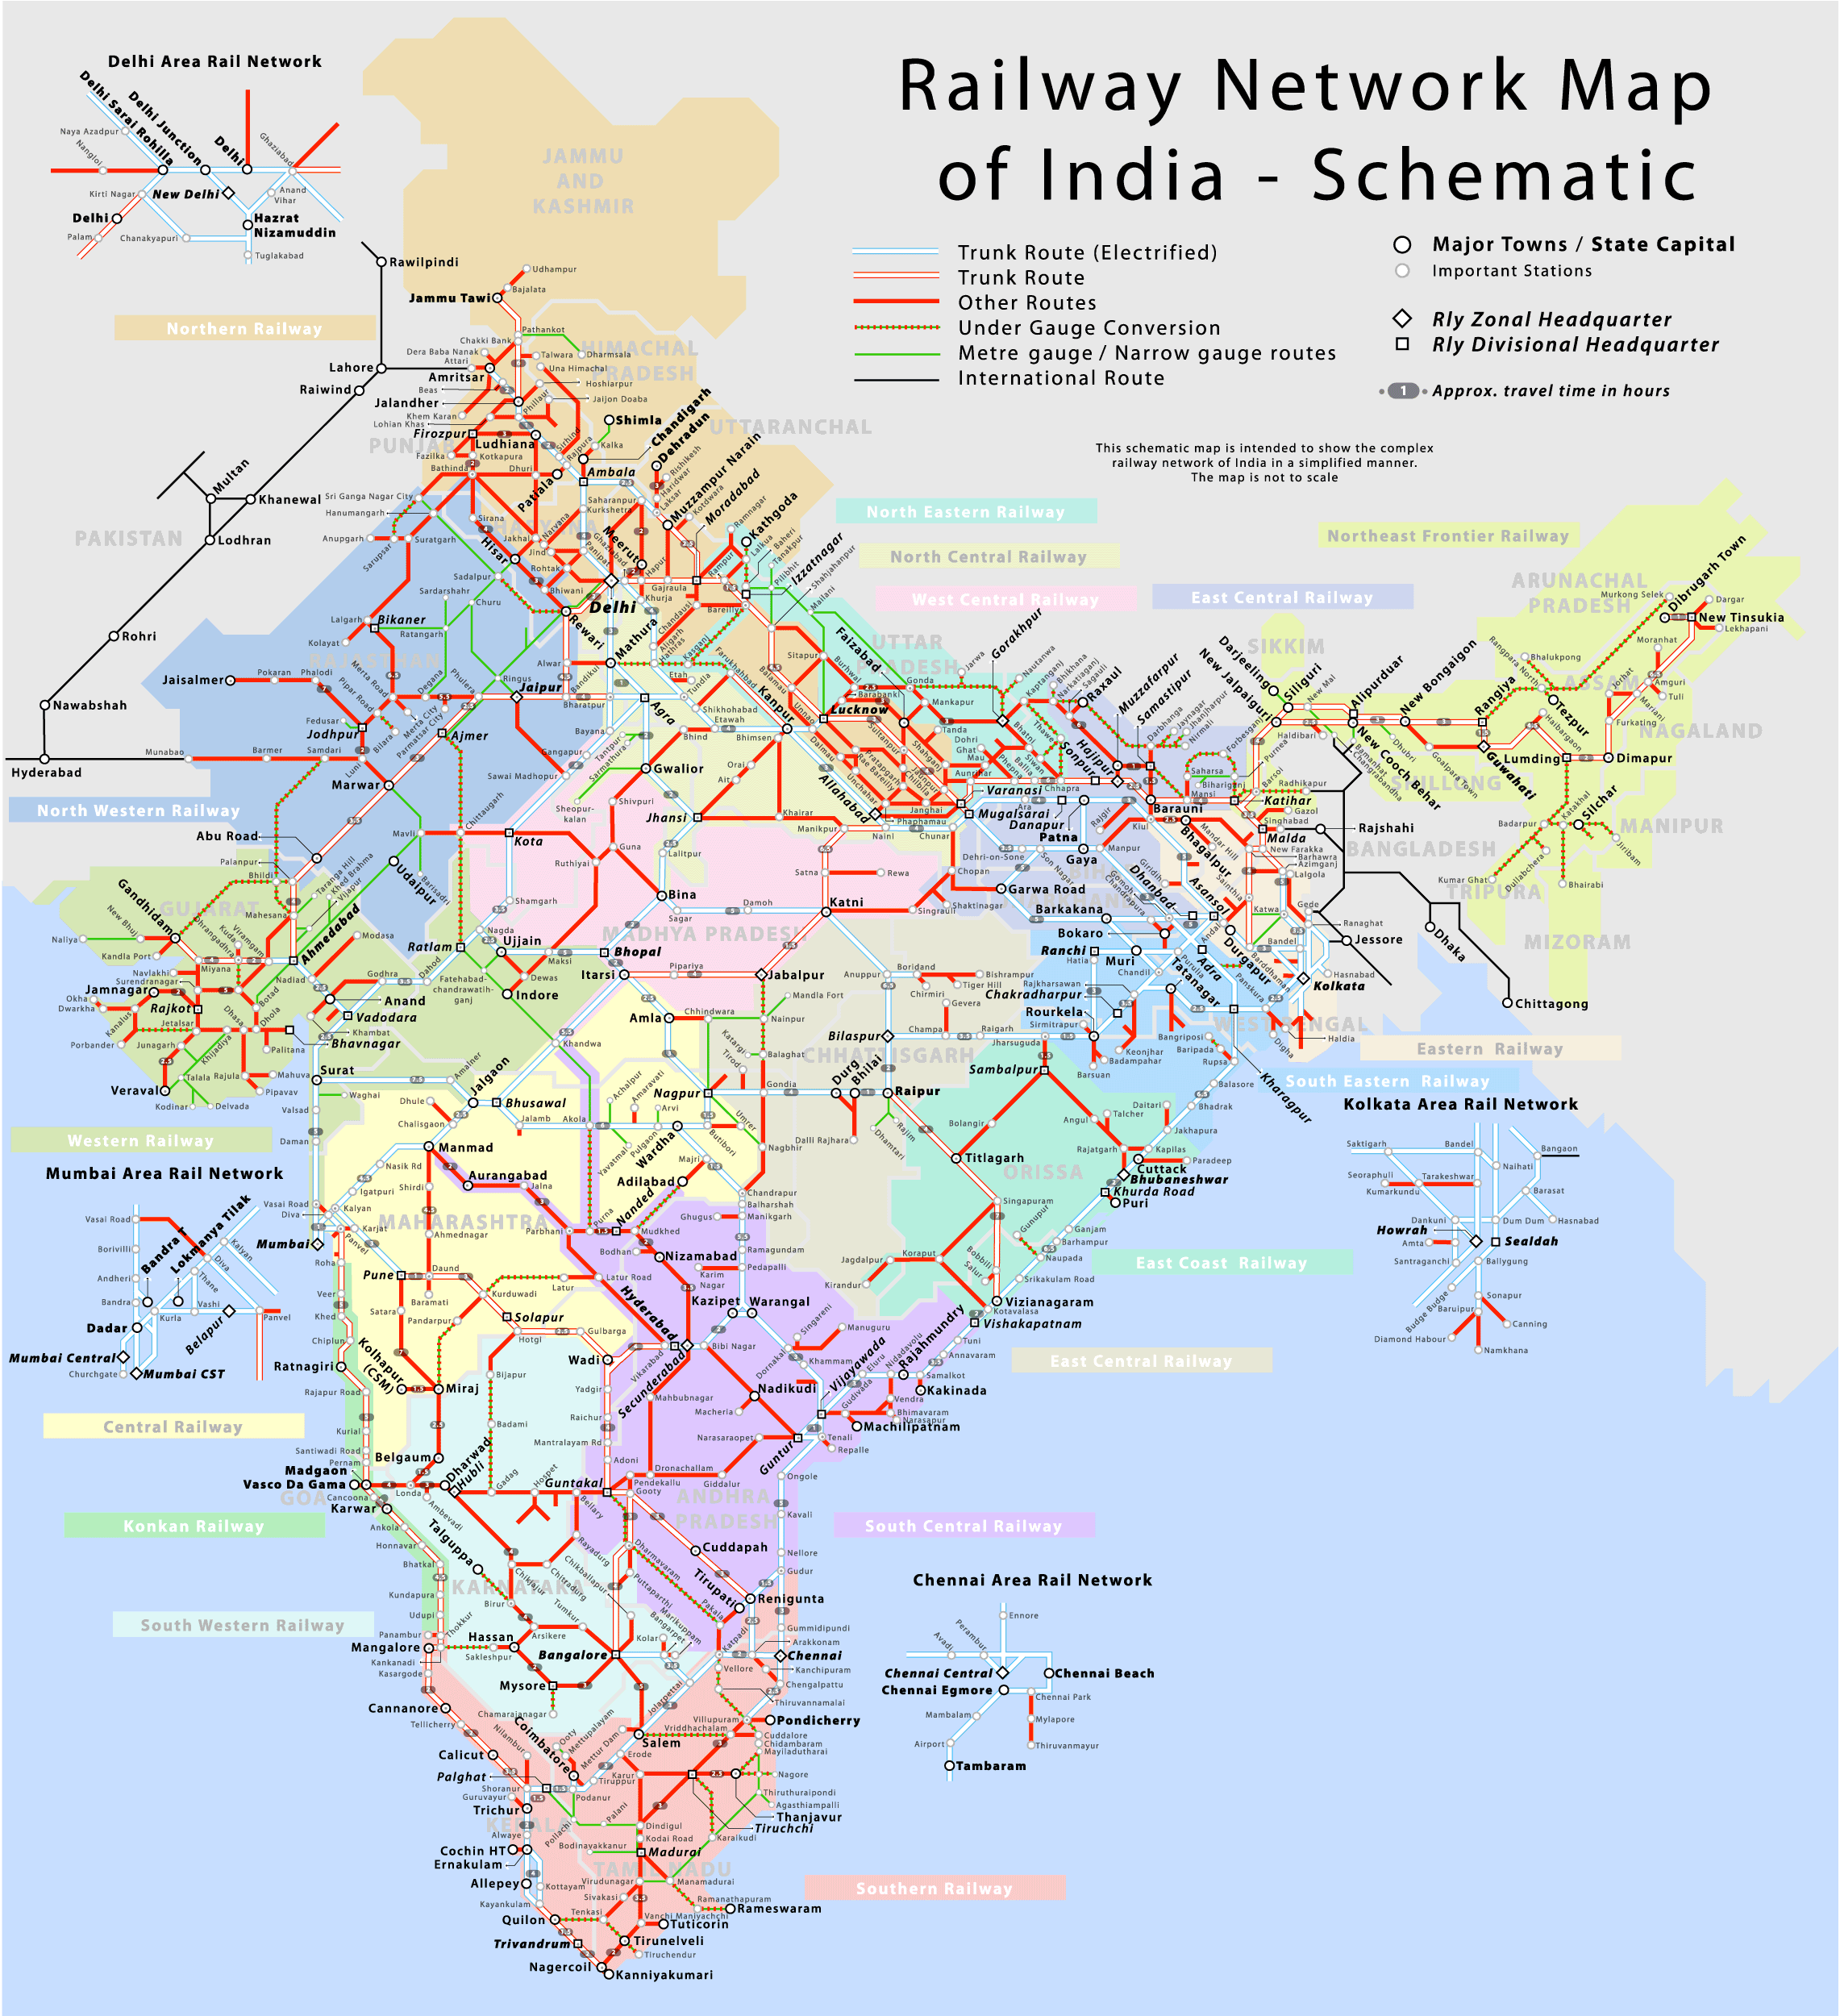 India railway network schematic map see map details from indiamike com